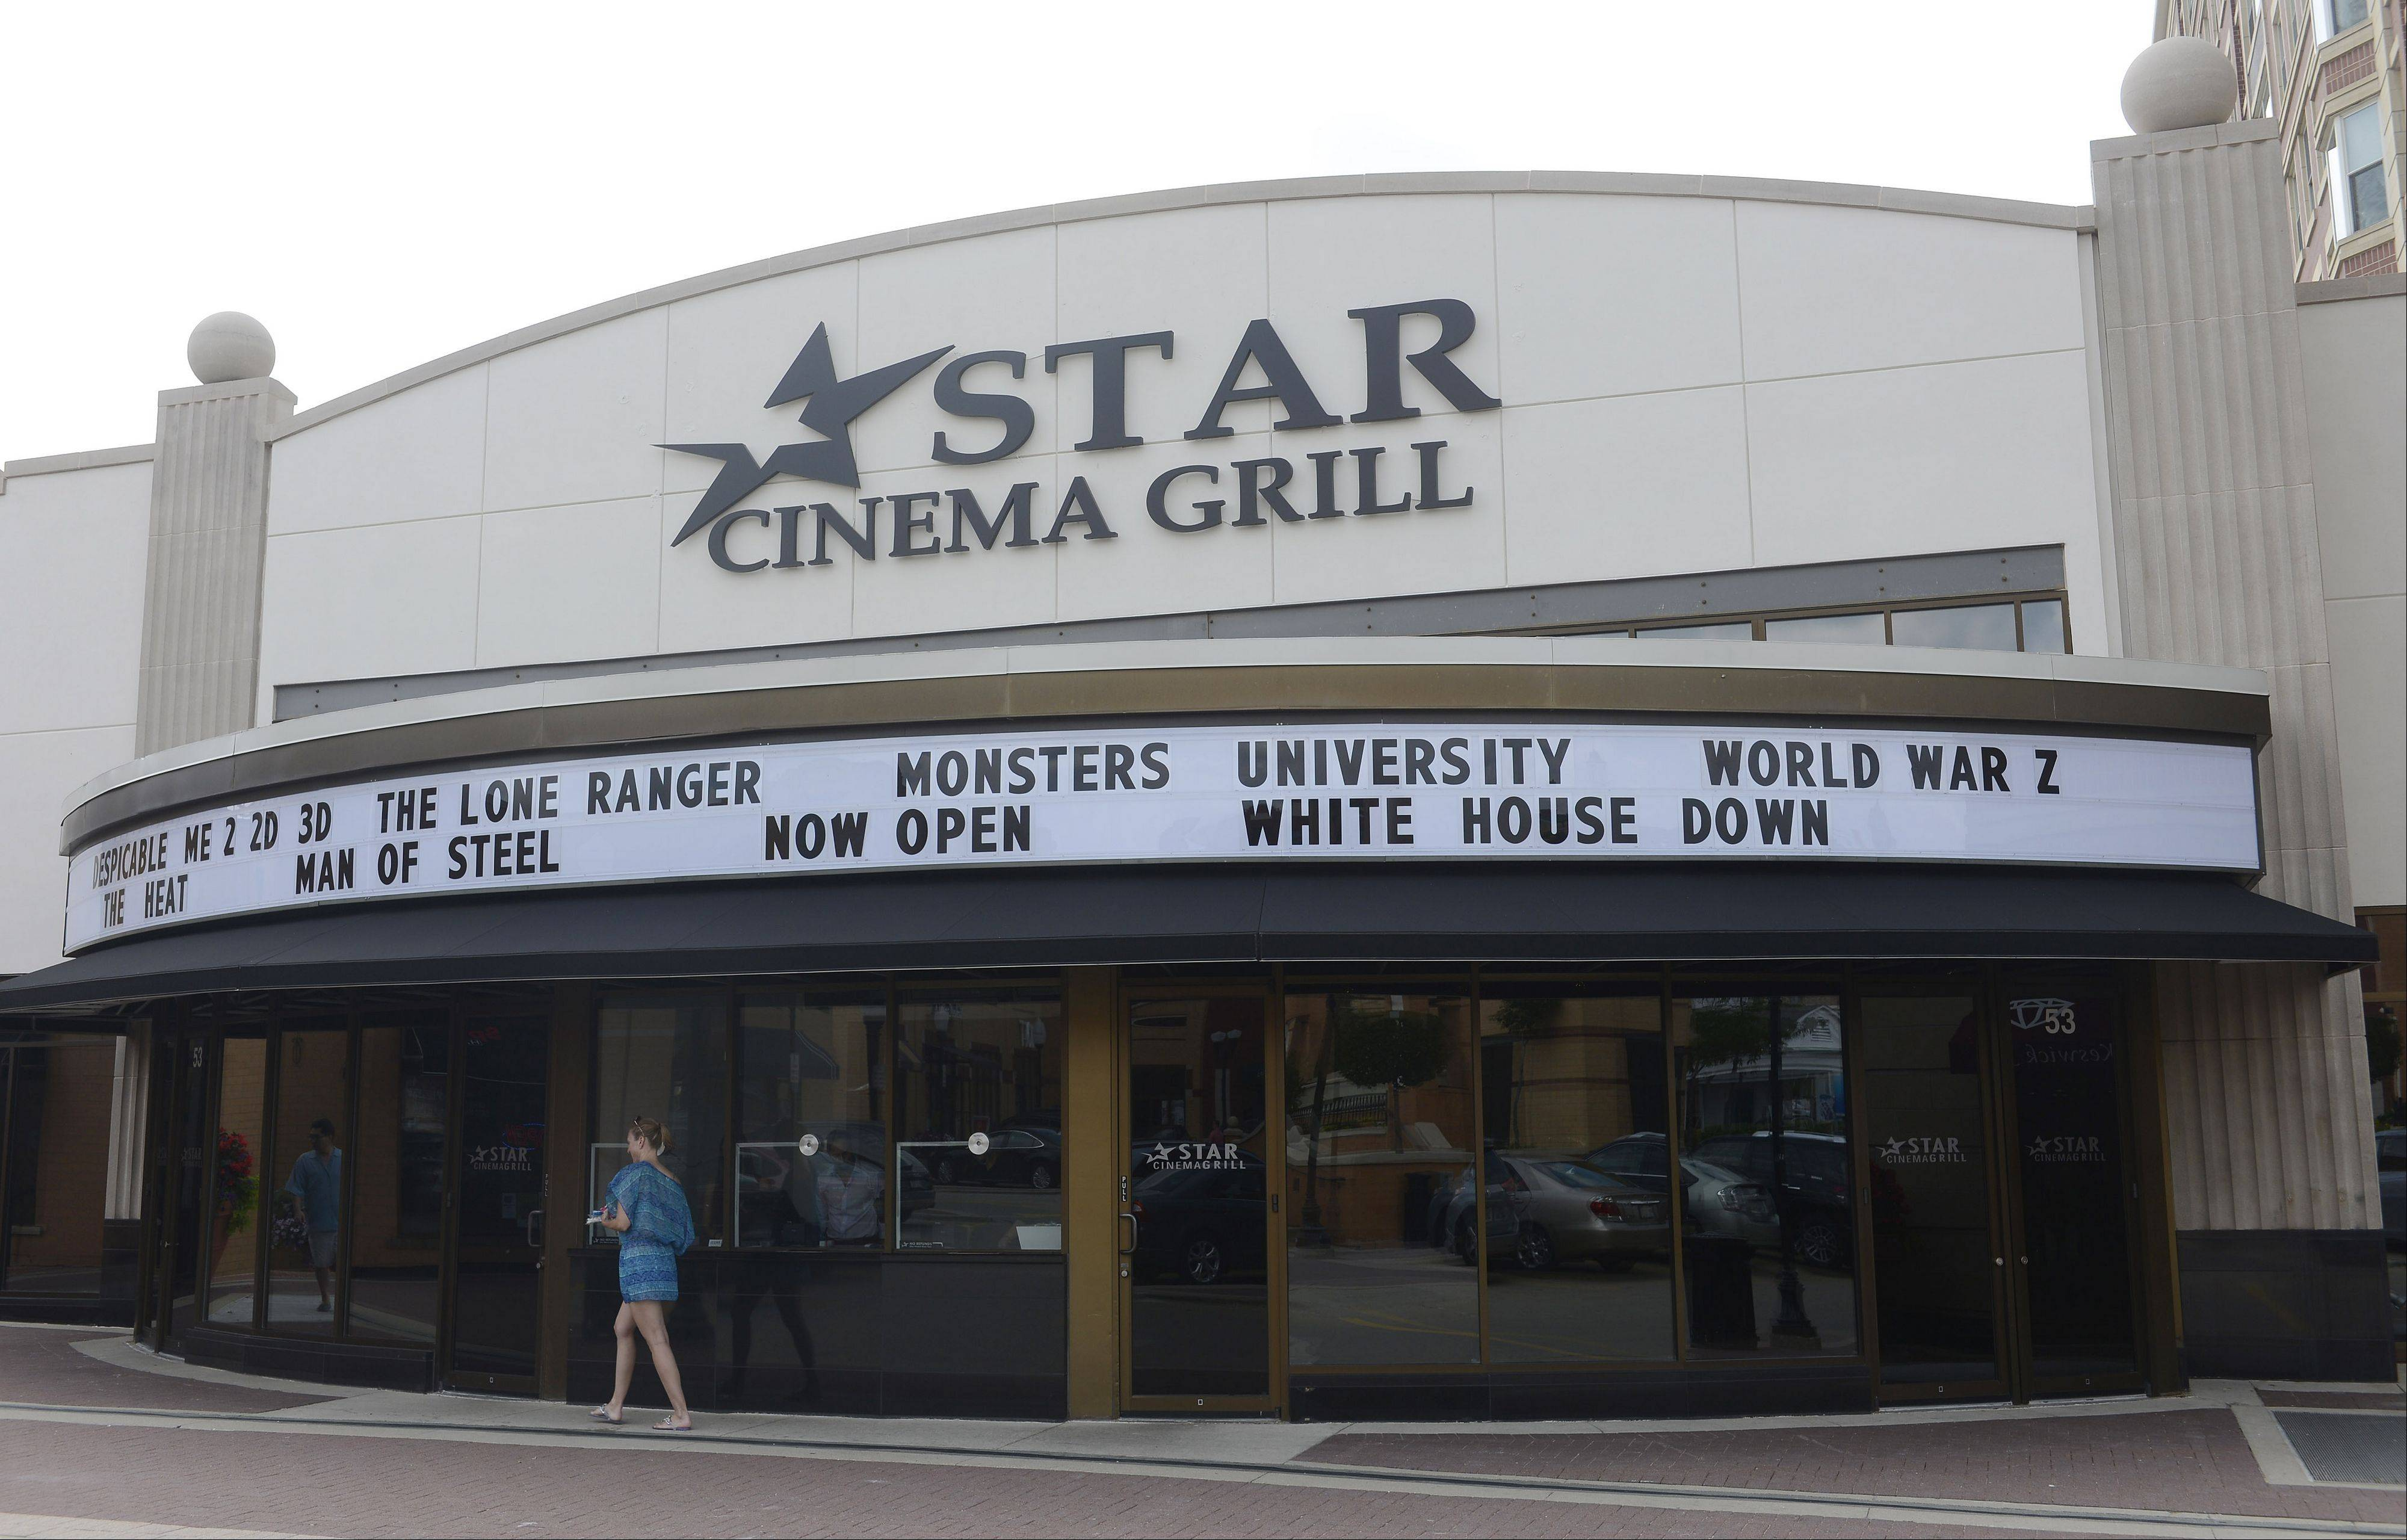 The Star Cinema Grill has opened in downtown Arlington Heights.